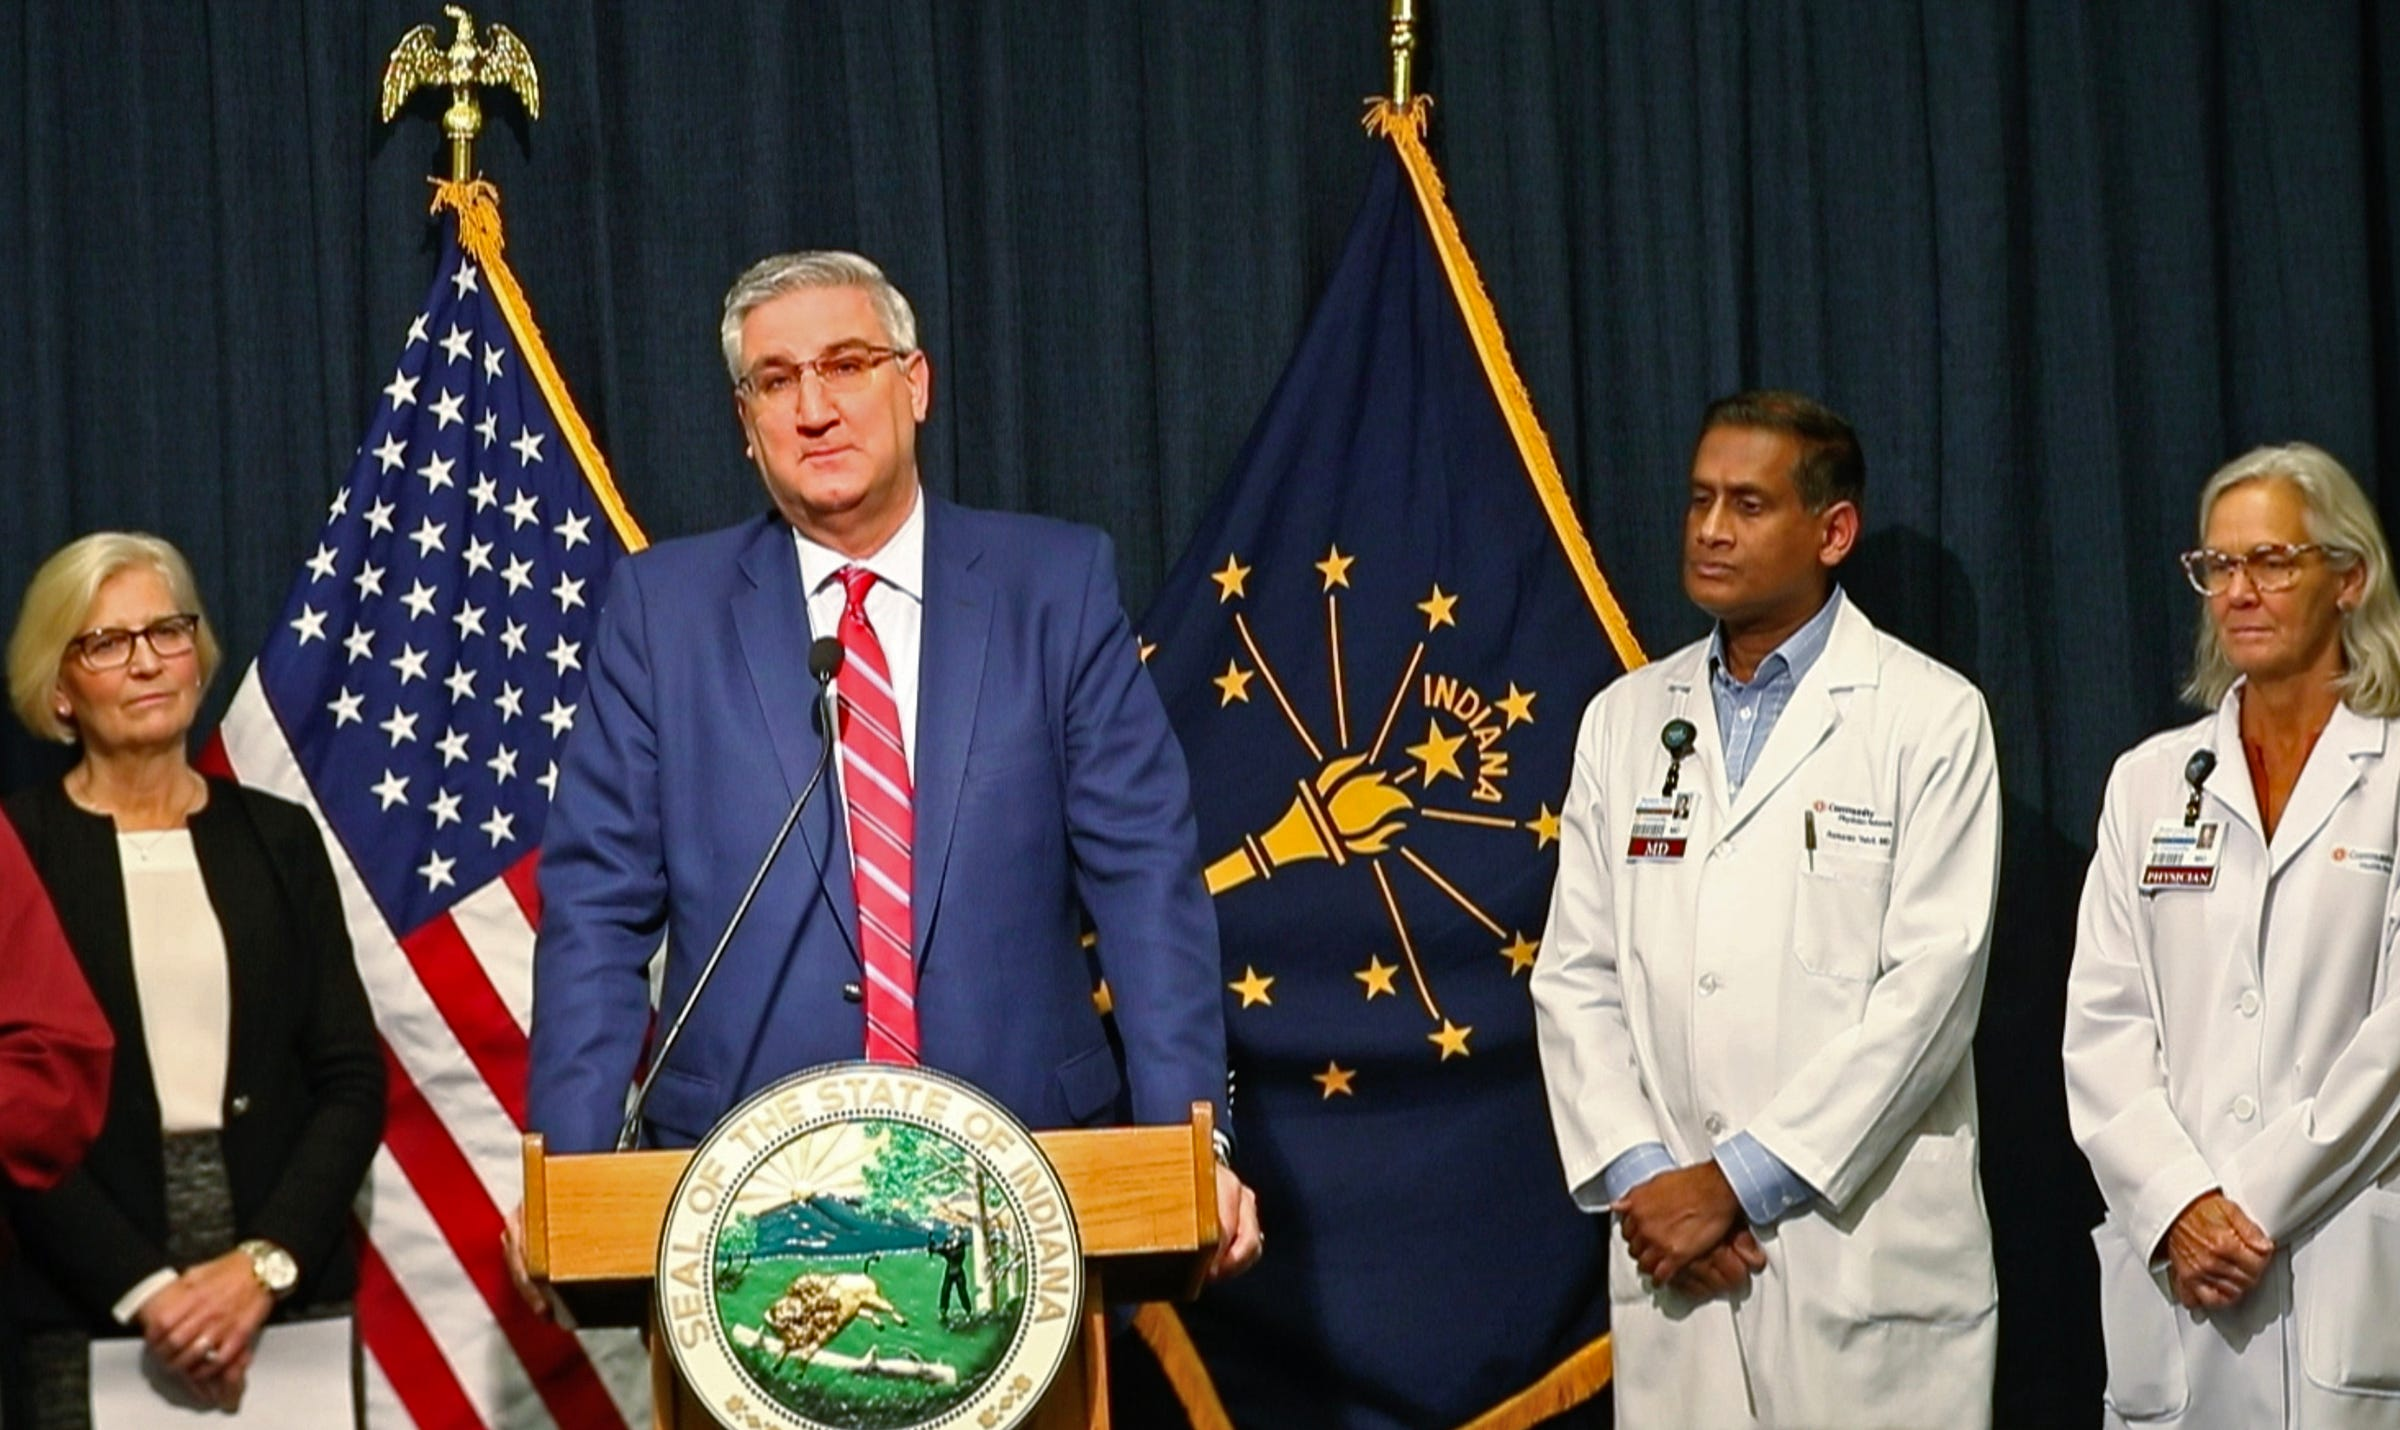 Gov. Eric Holcomb announces during a press conference at the Indiana Statehouse that the first case of COVID-19 has been diagnosed in Indiana.